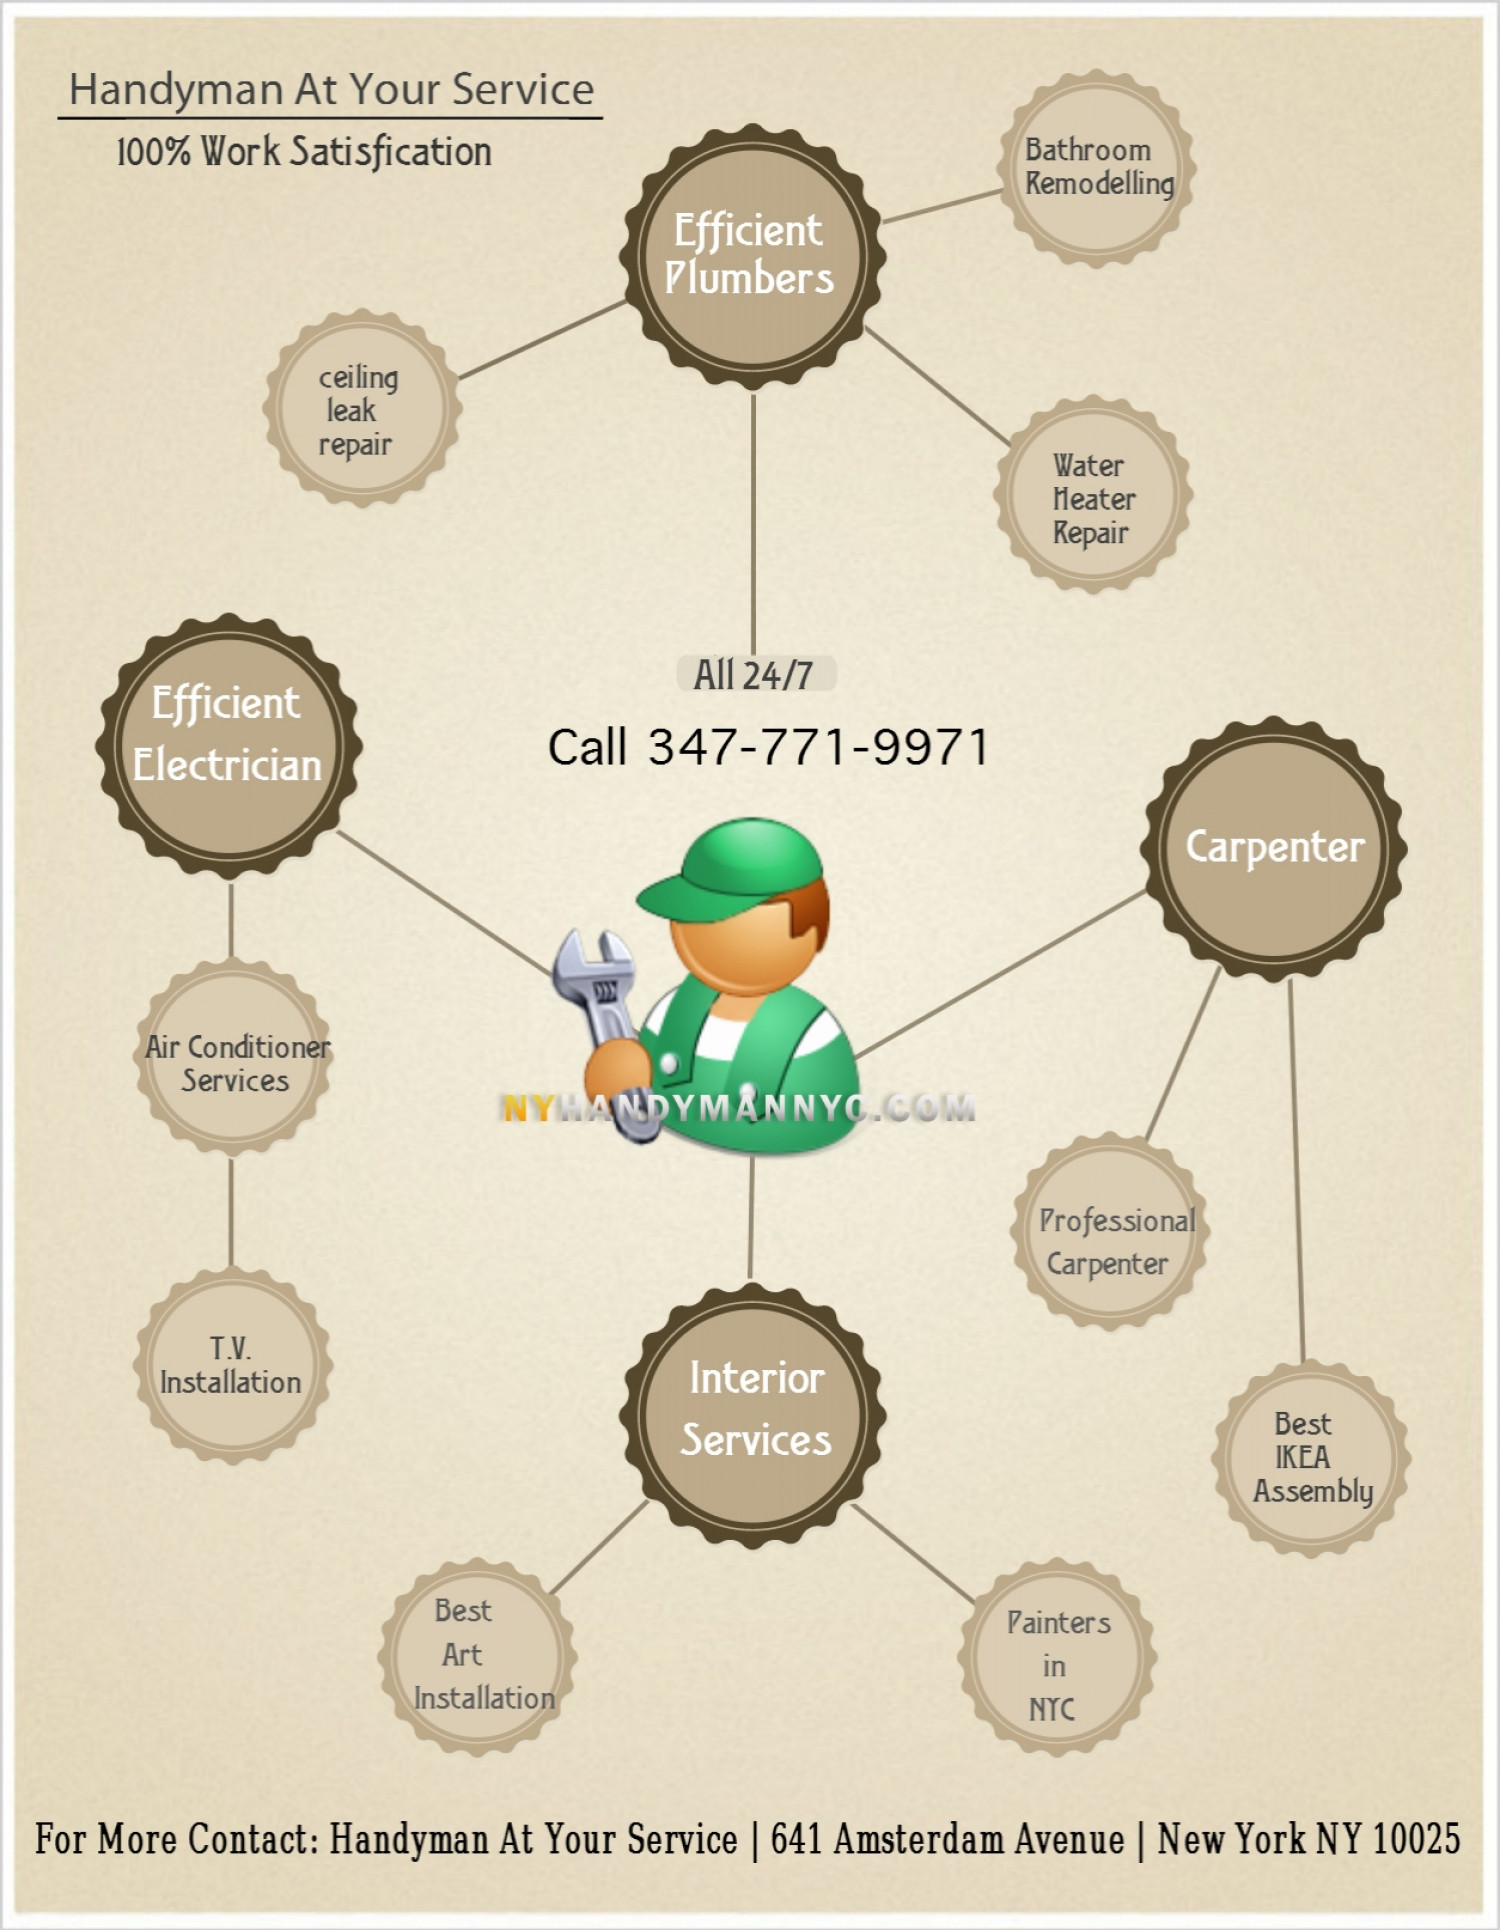 Handyman at Your Service Infographic